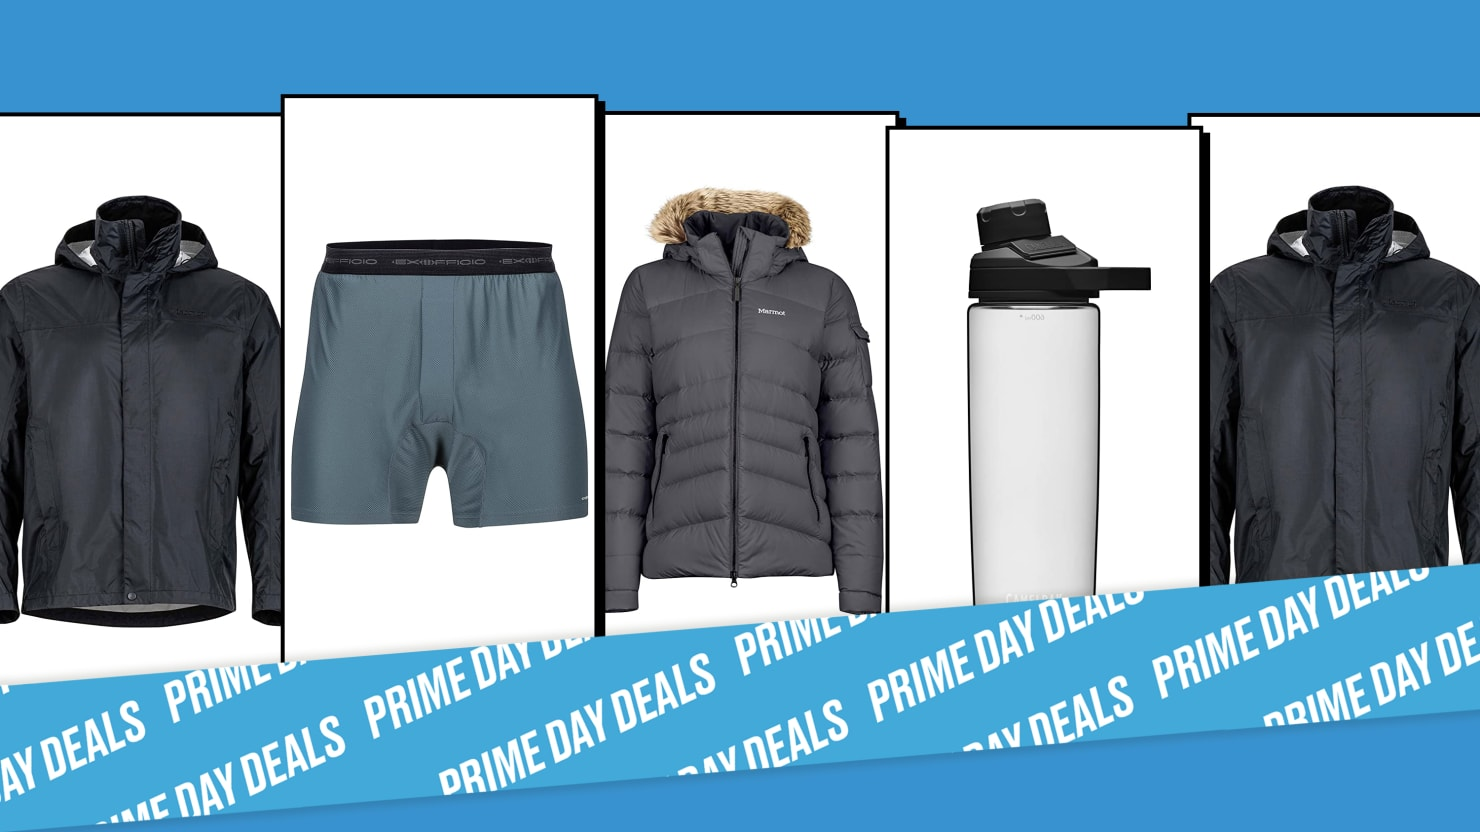 Get Outside With Up to 30% off Top Outdoor Brands